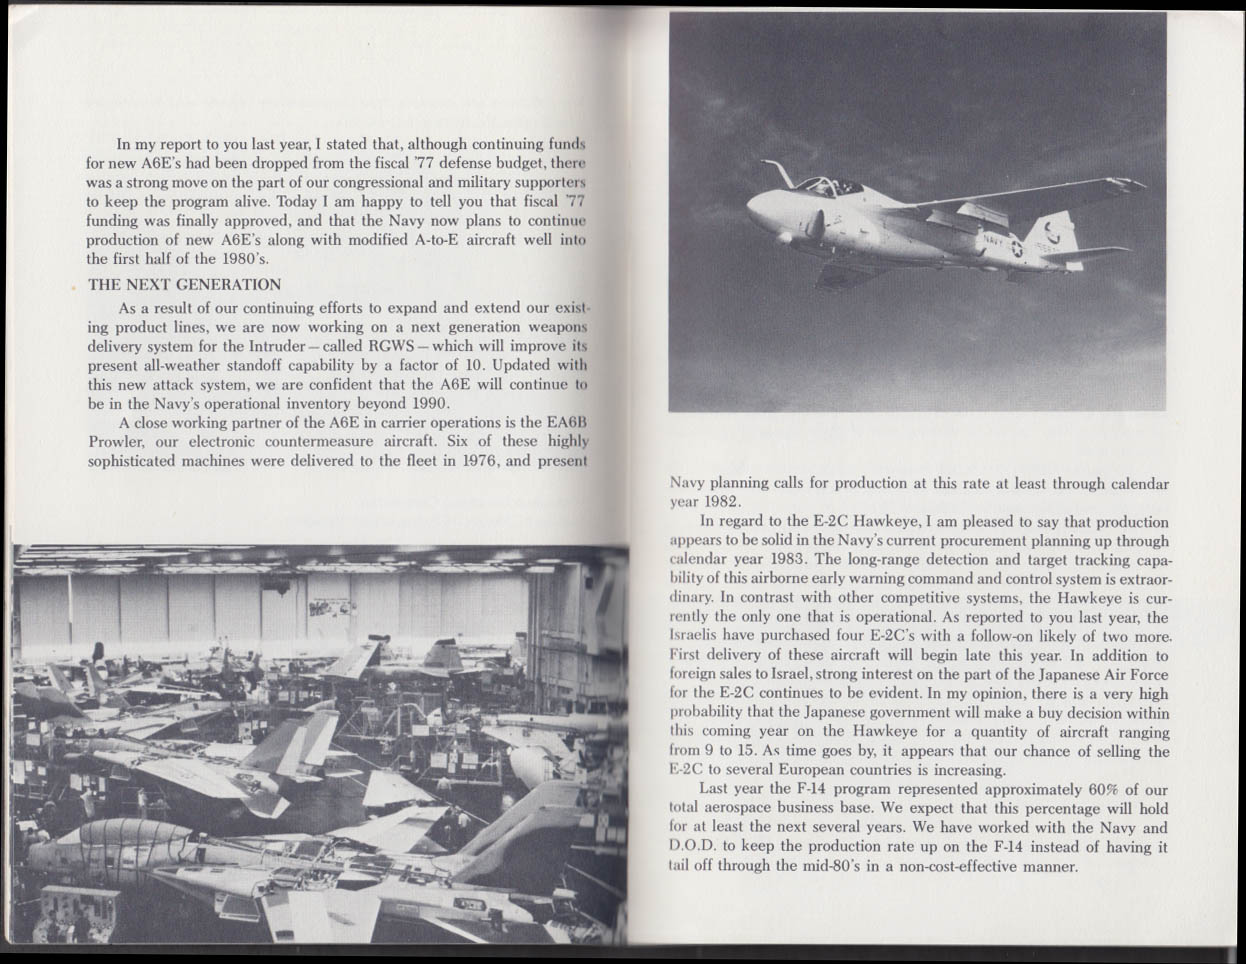 Grumman Aviation OVERVIEW 6 1977 Annual Meeting Report